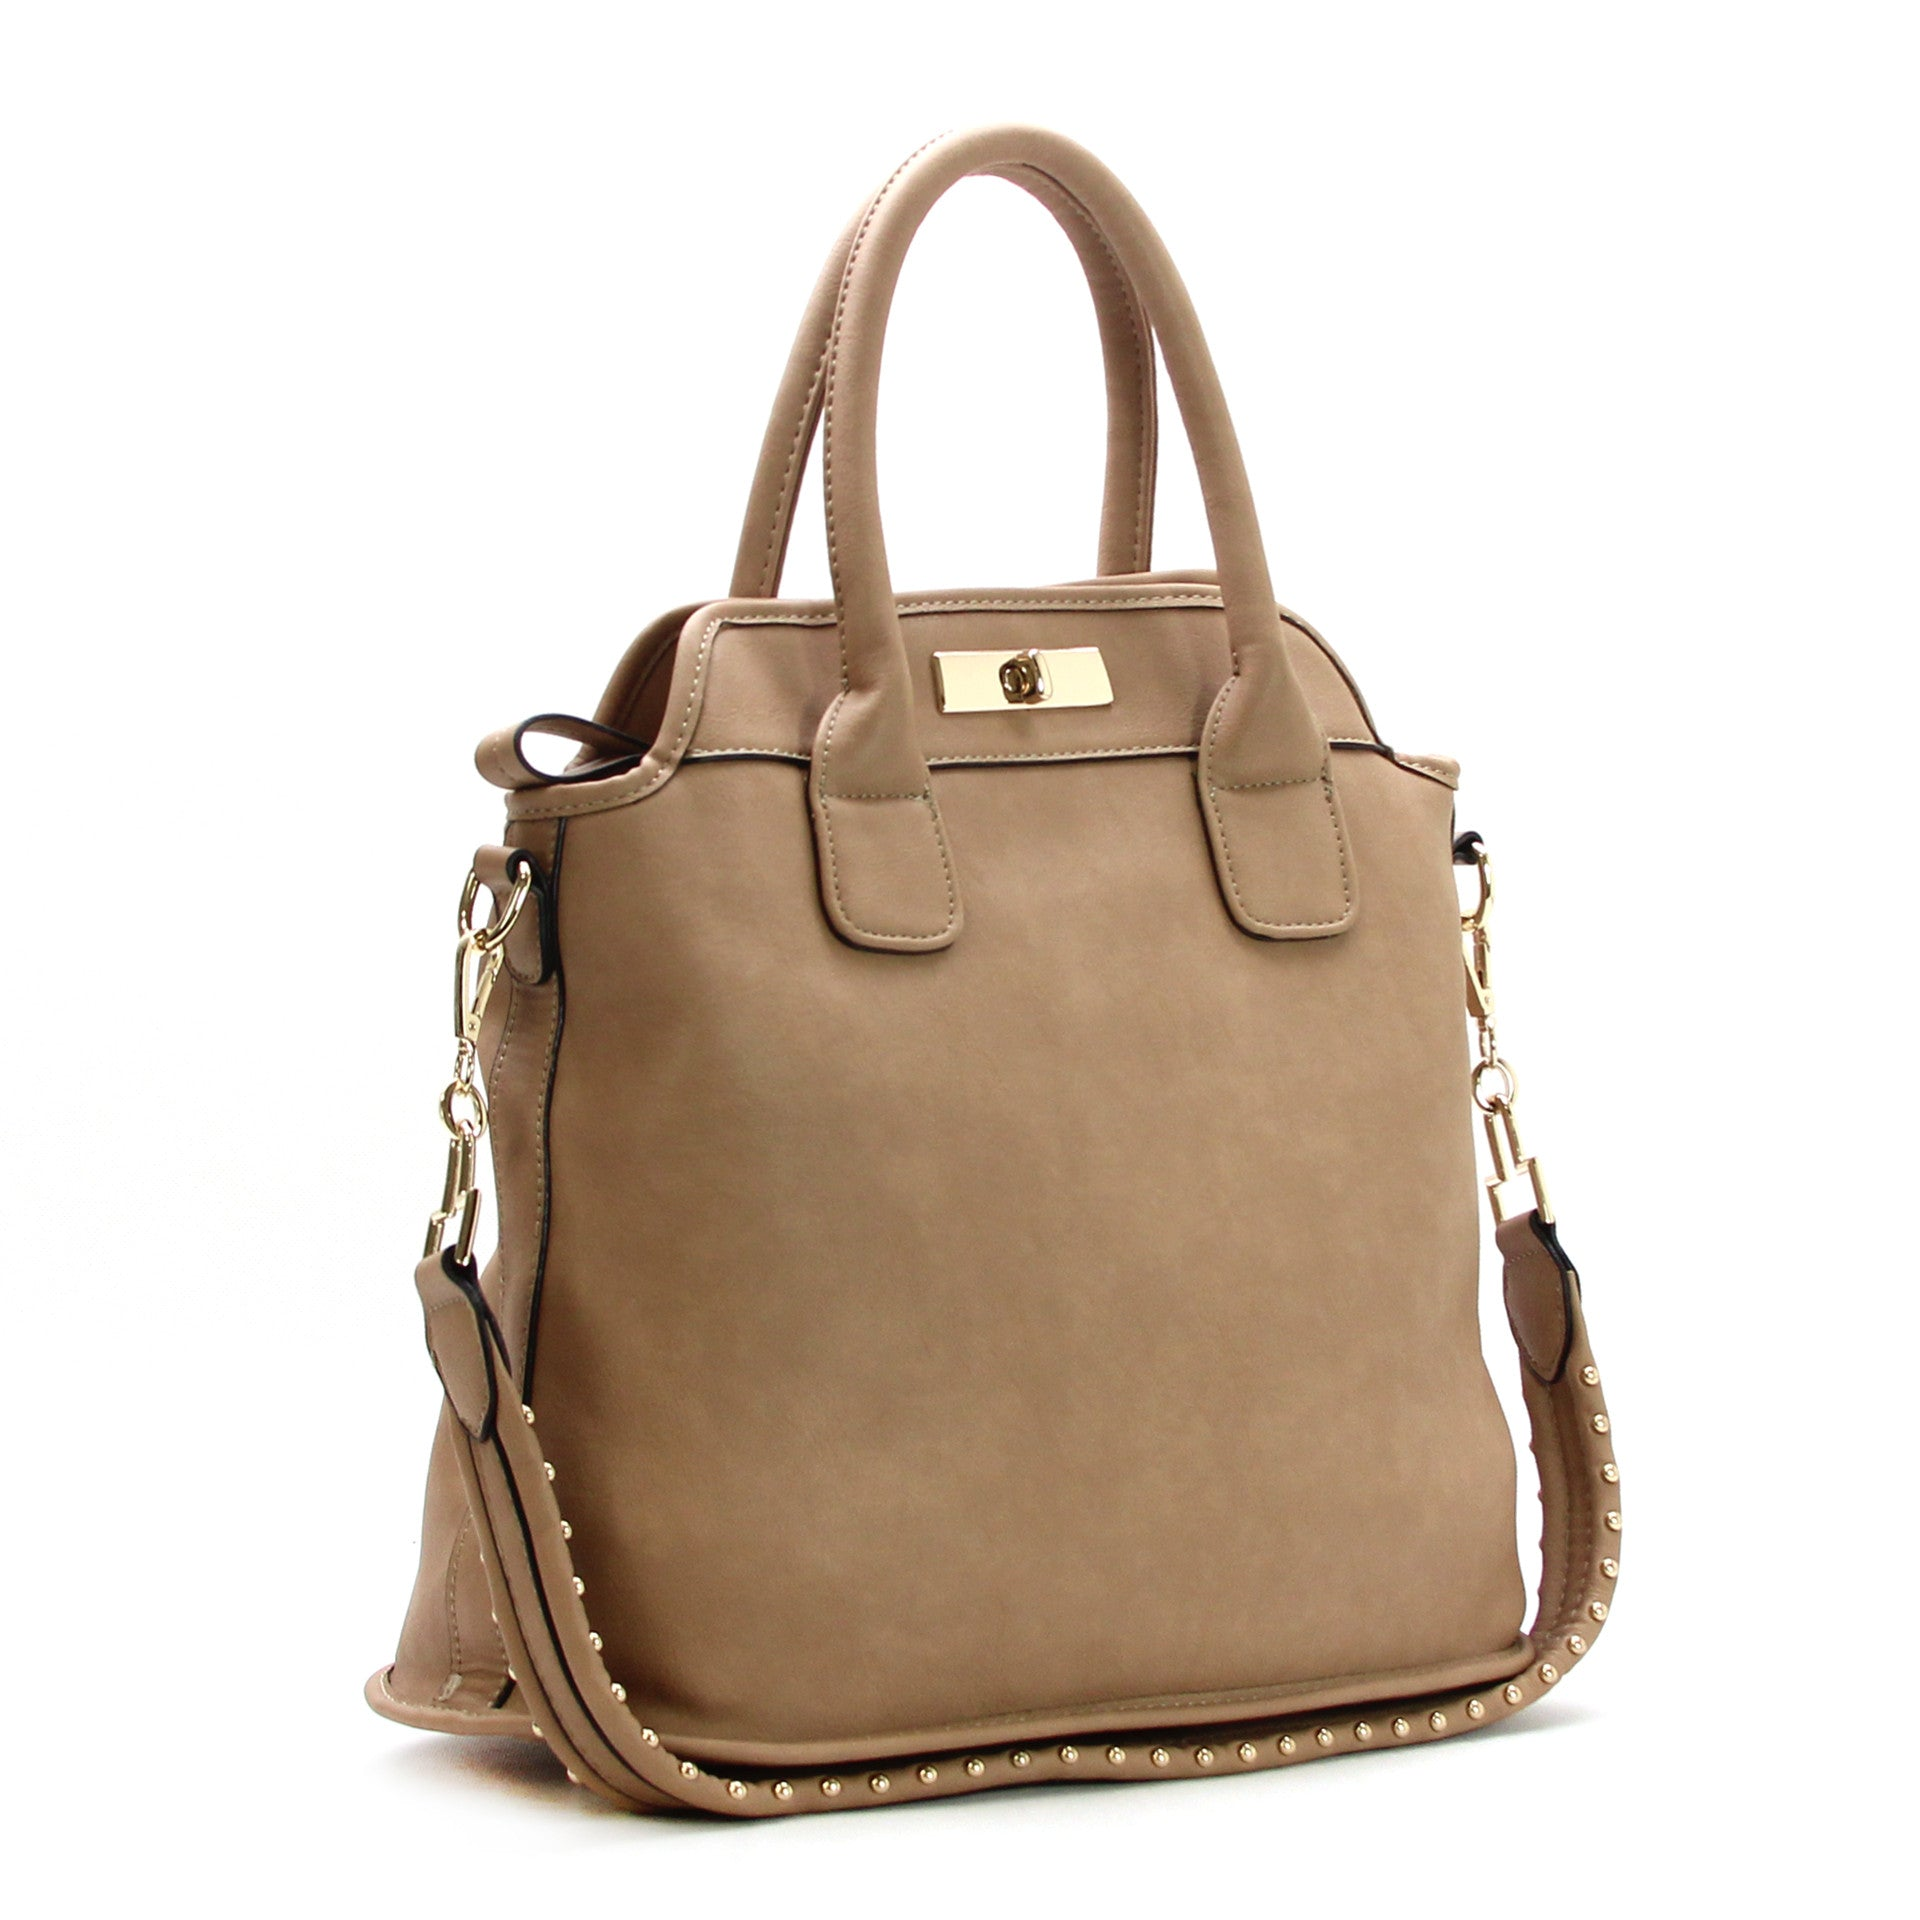 Robert Matthew Scarlett Tote - Khaki - Robert Matthew Handbags and Fashion